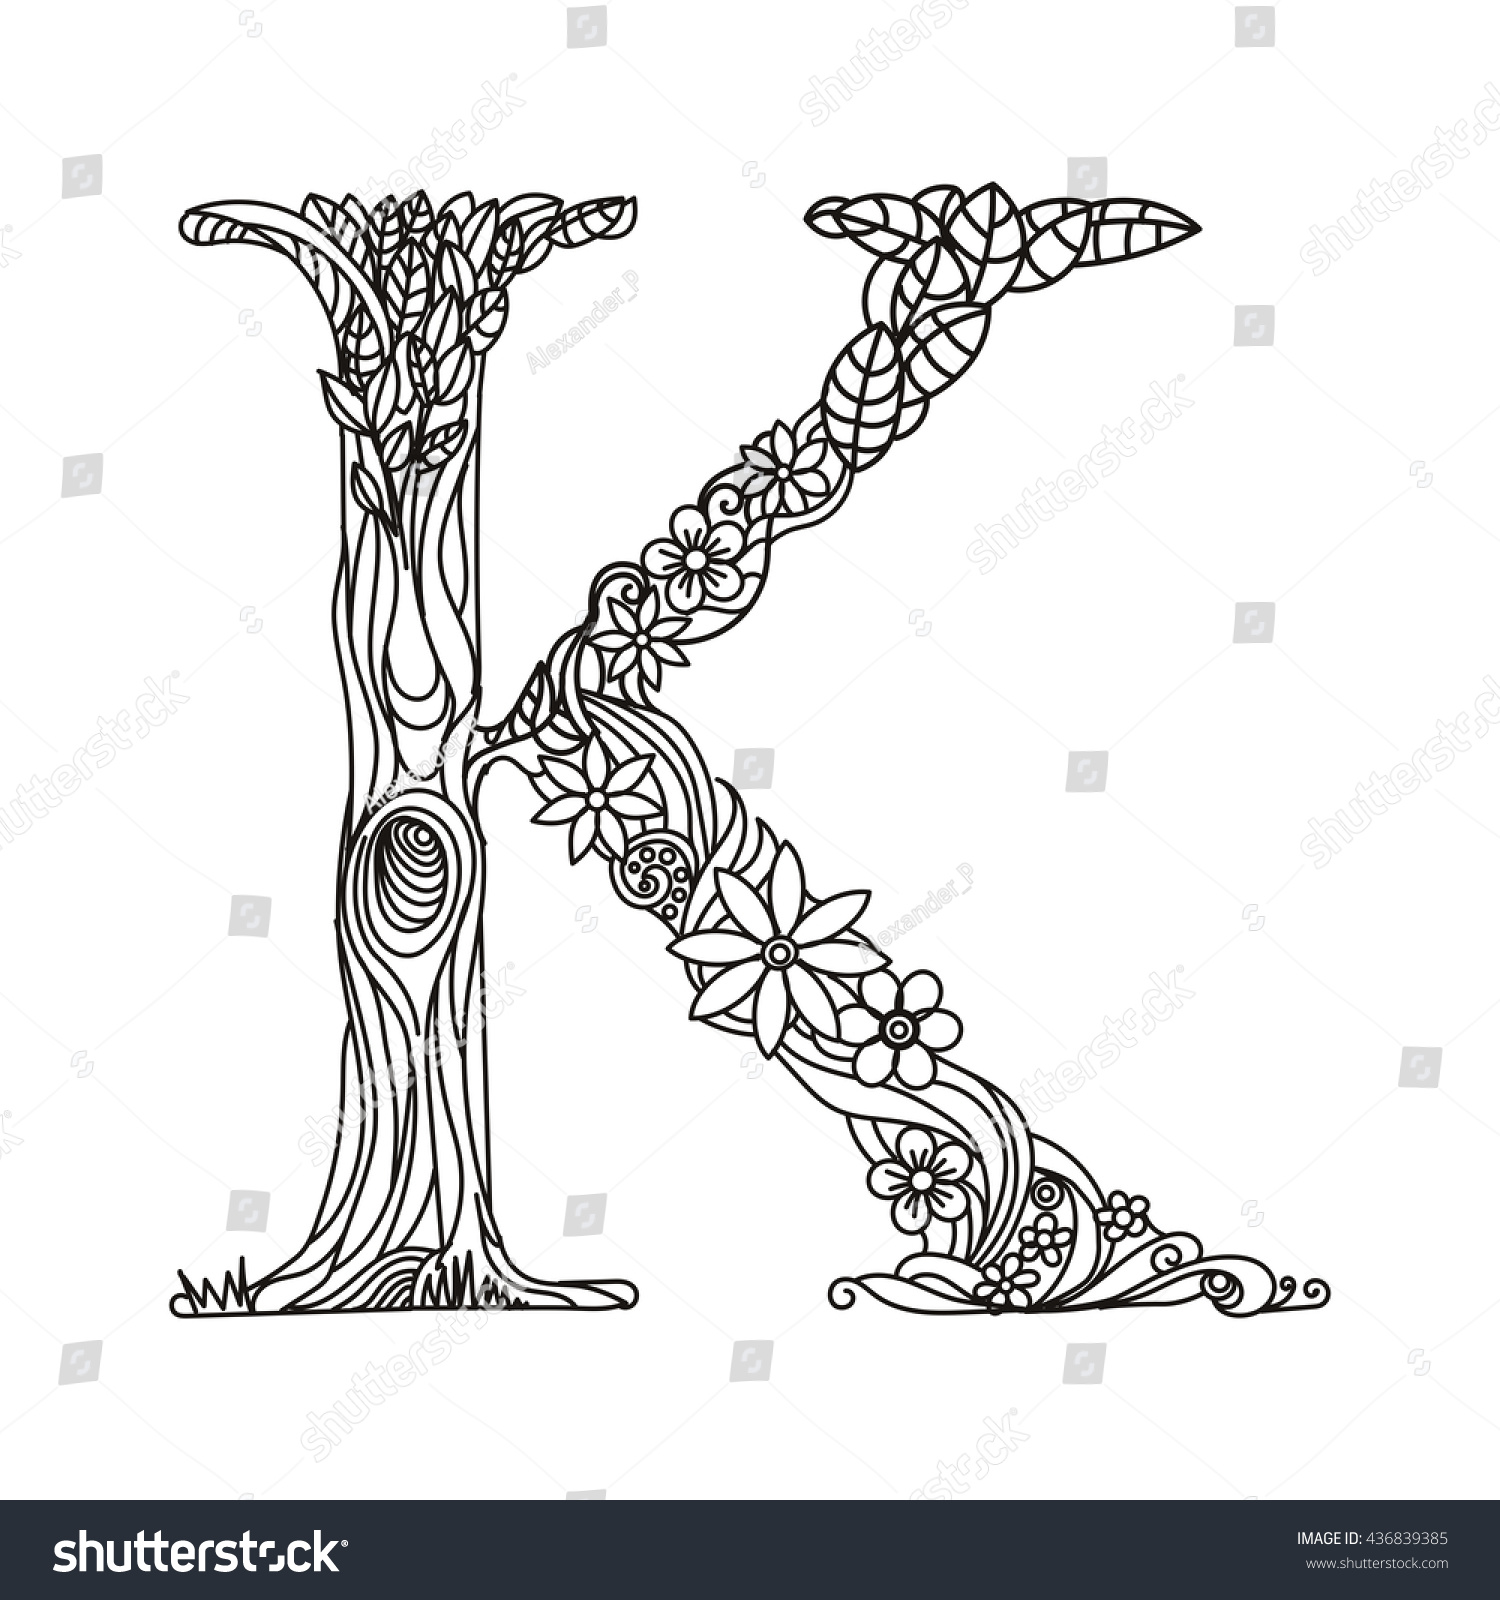 Floral Alphabet Letter Coloring Book Adults Stock Vector (2018 ...